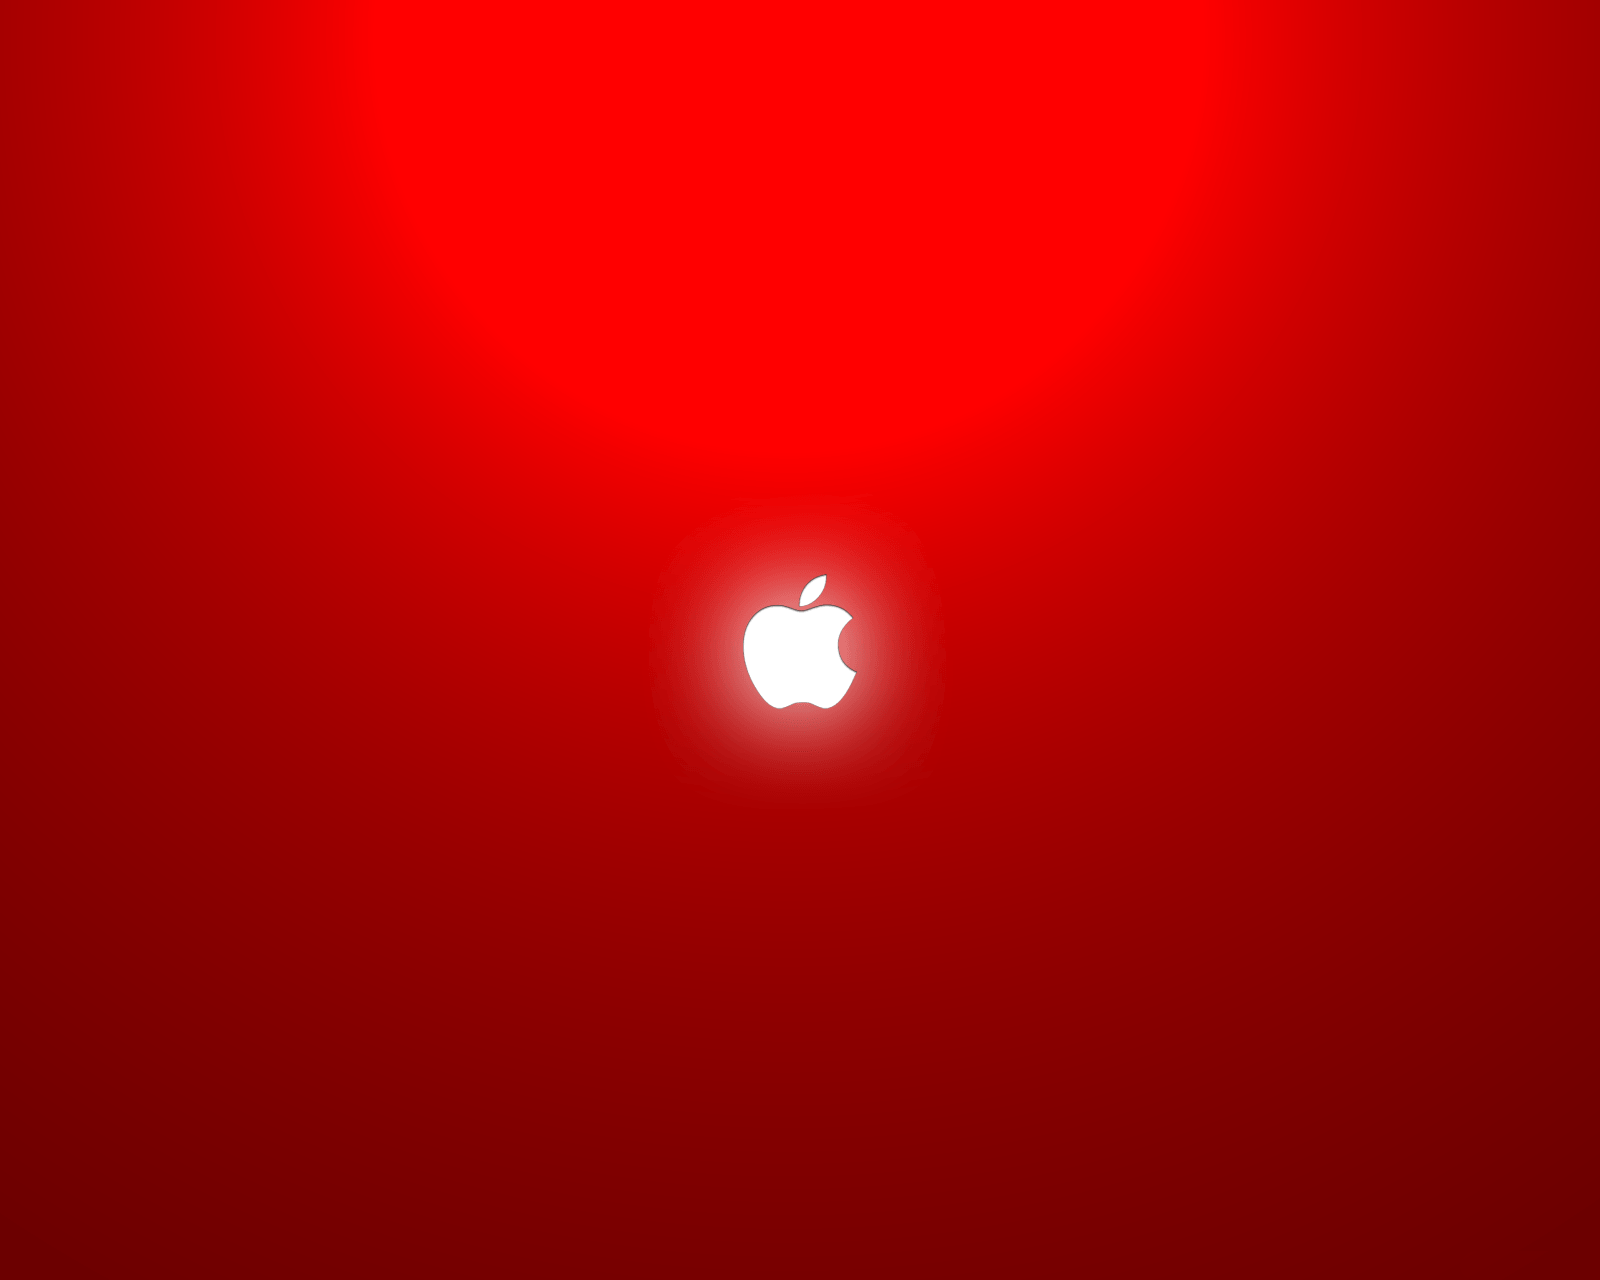 All Red Wallpapers Wallpaper Cave